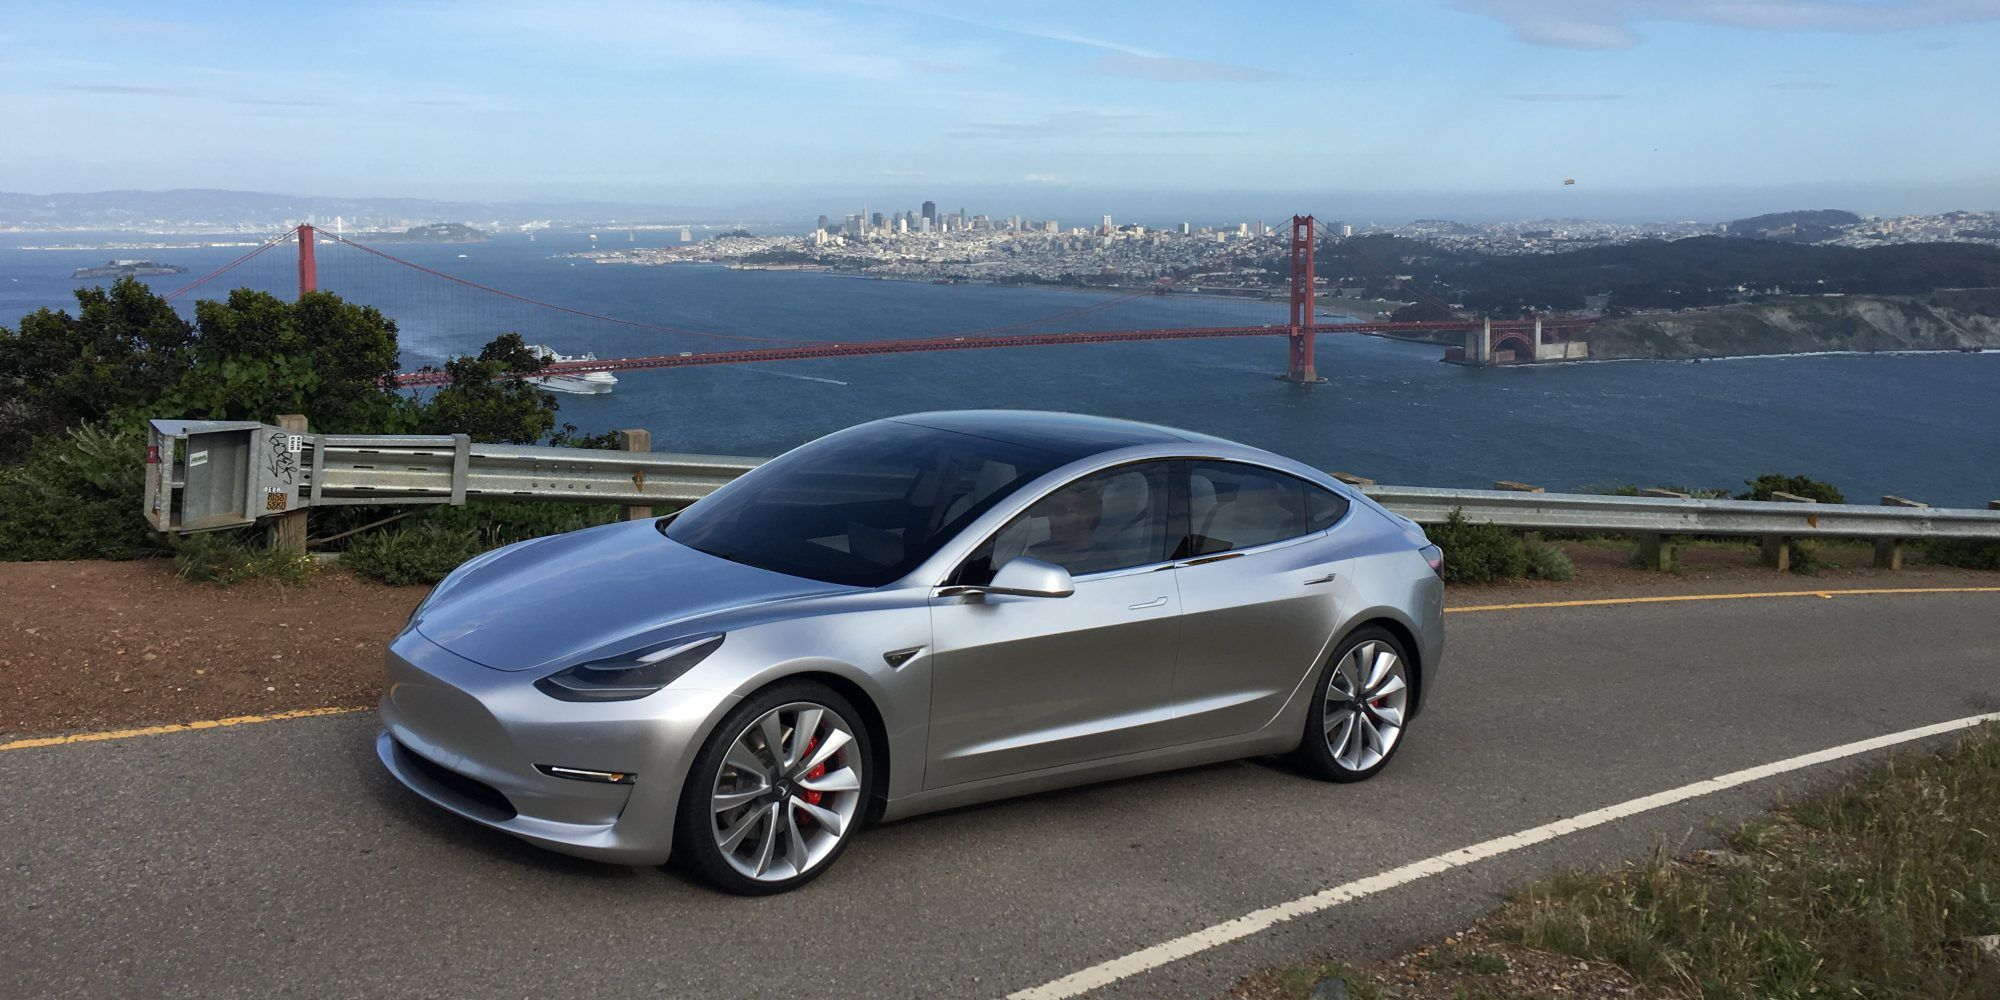 Beautiful pictures of a Tesla Model 3 prototype in Marin Headlands.